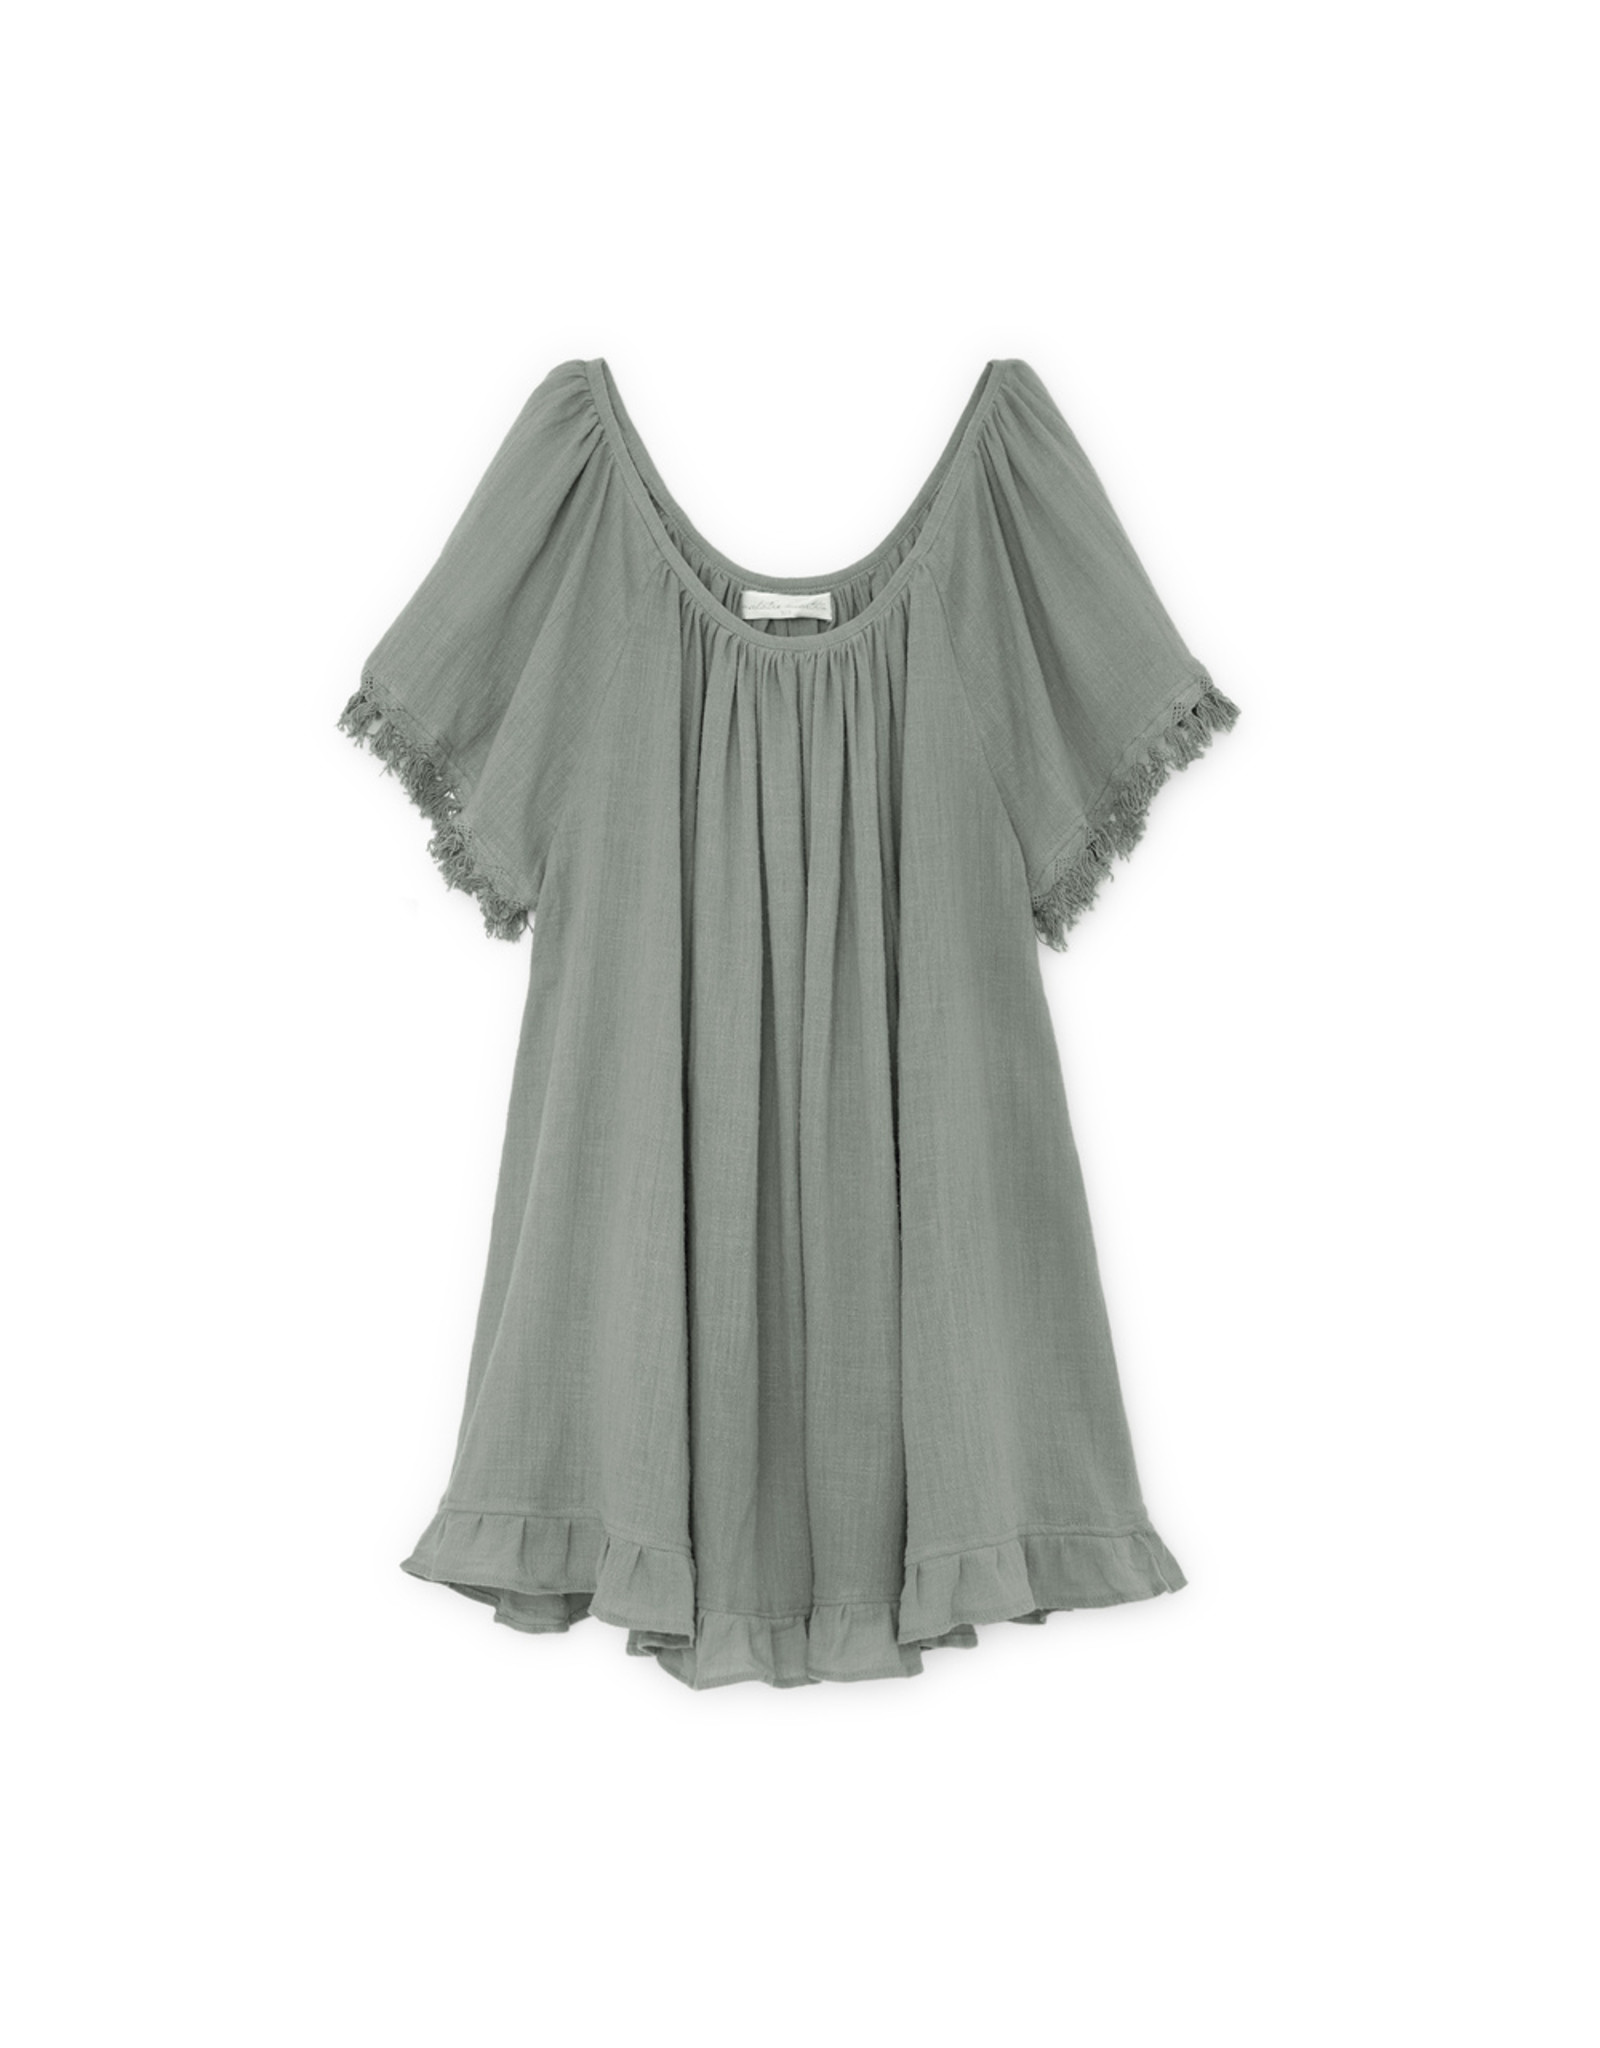 goop x Natalie Martin Marina Dress - Sage Cotton Gauze (One Size)